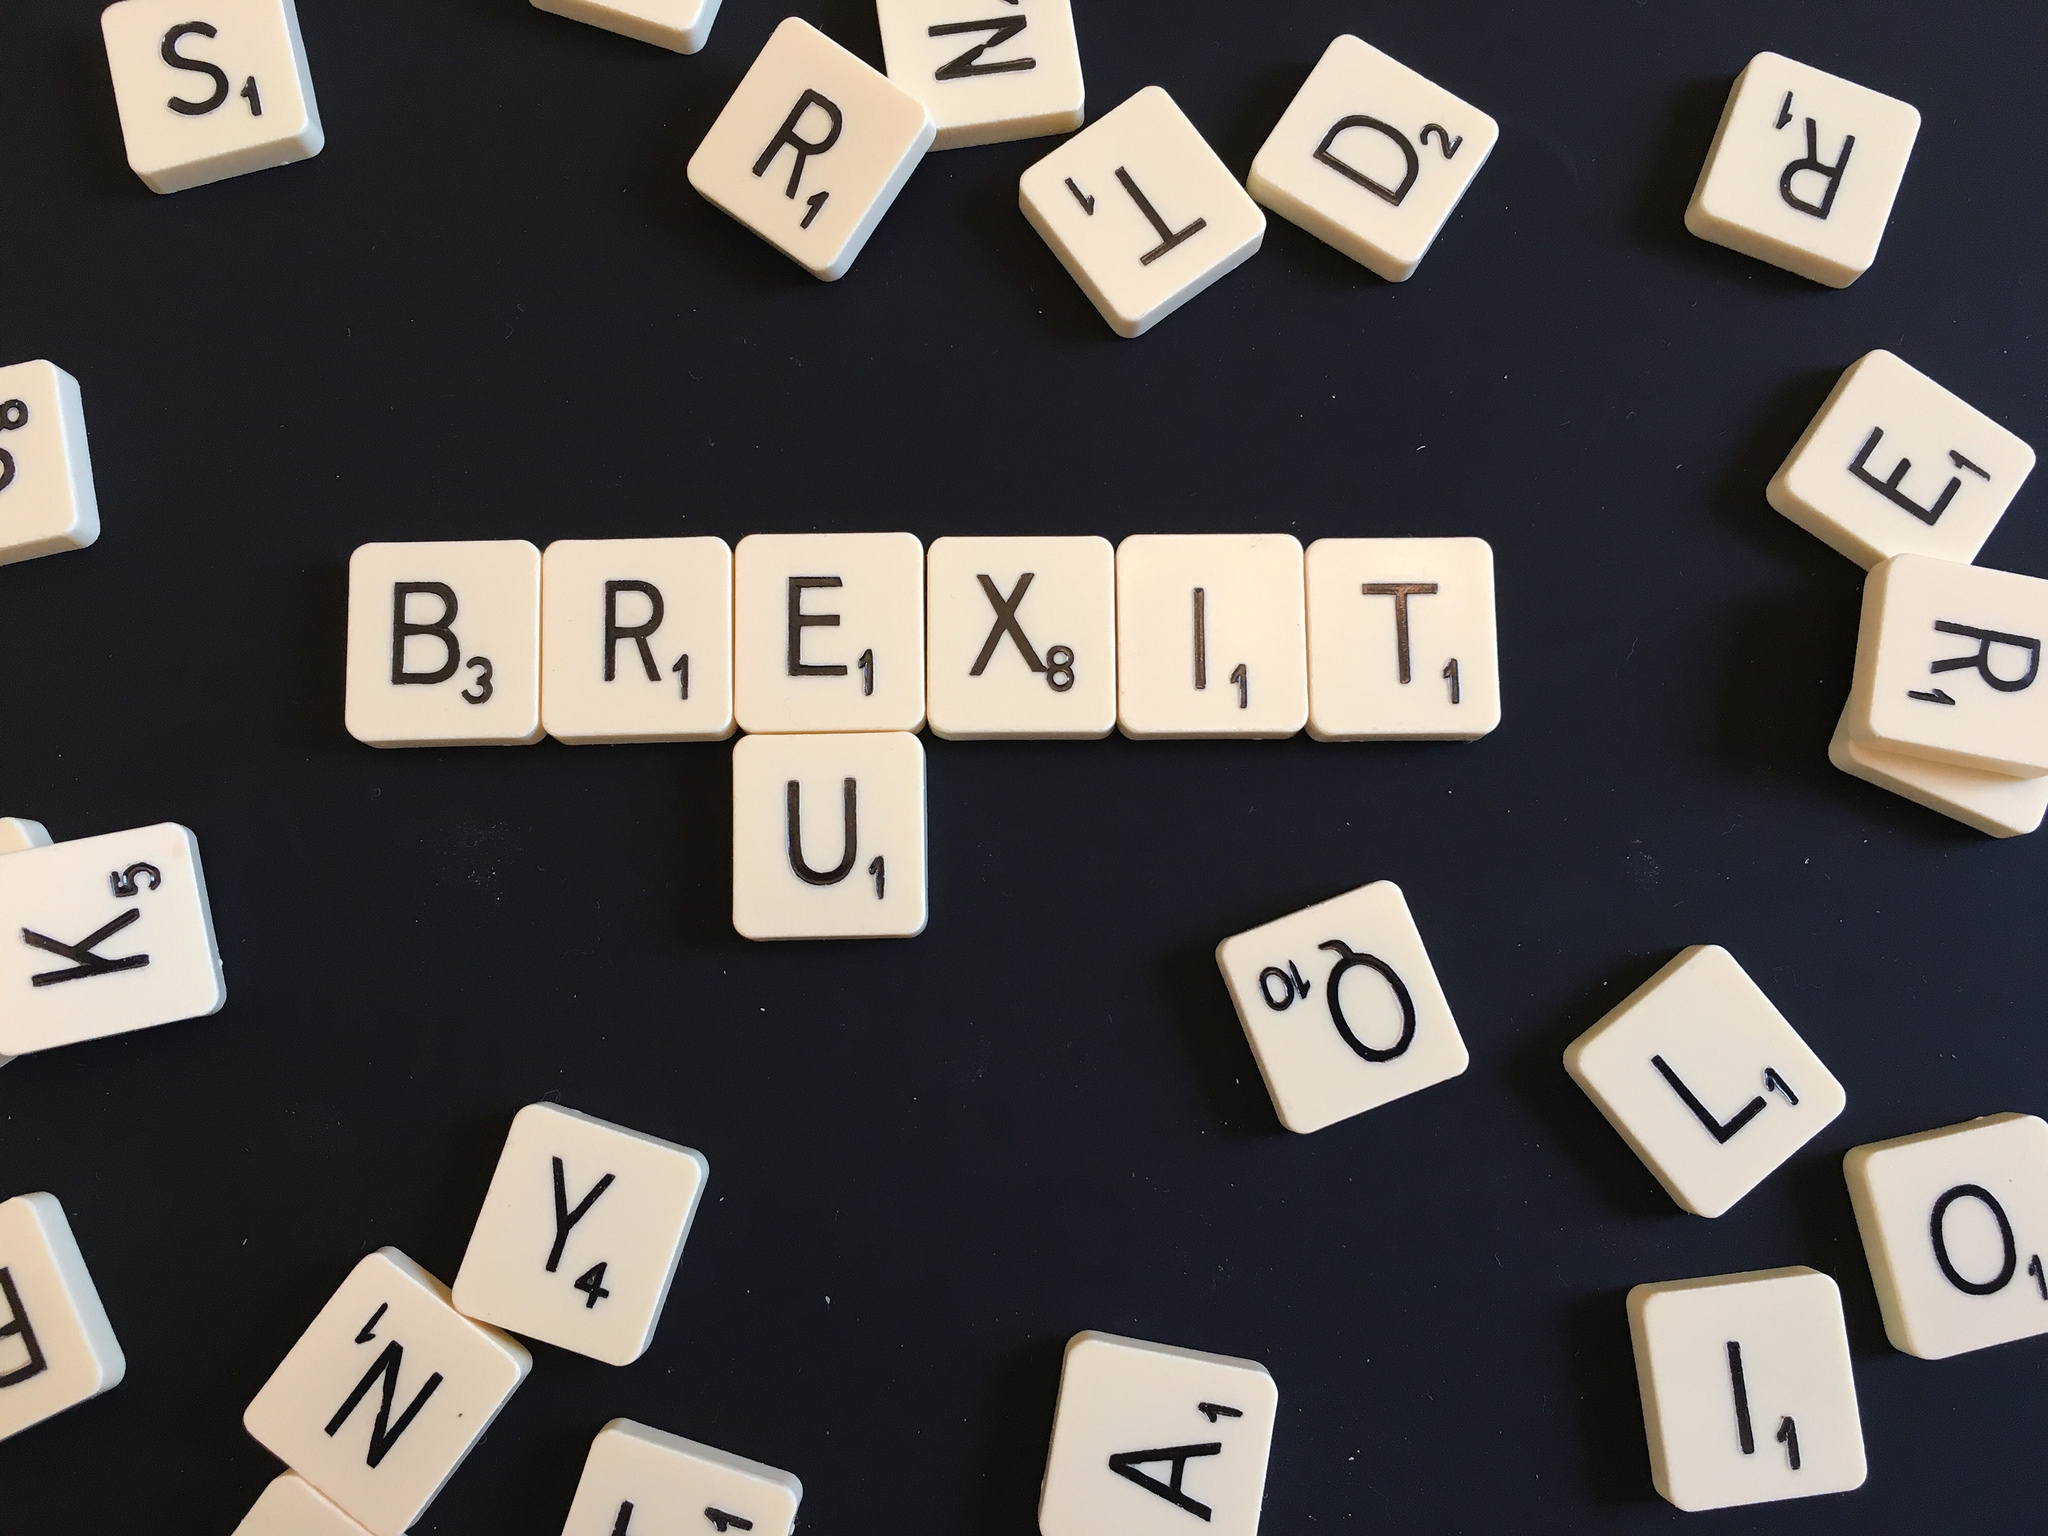 Brexit. Photo: Jeff Djevdet.